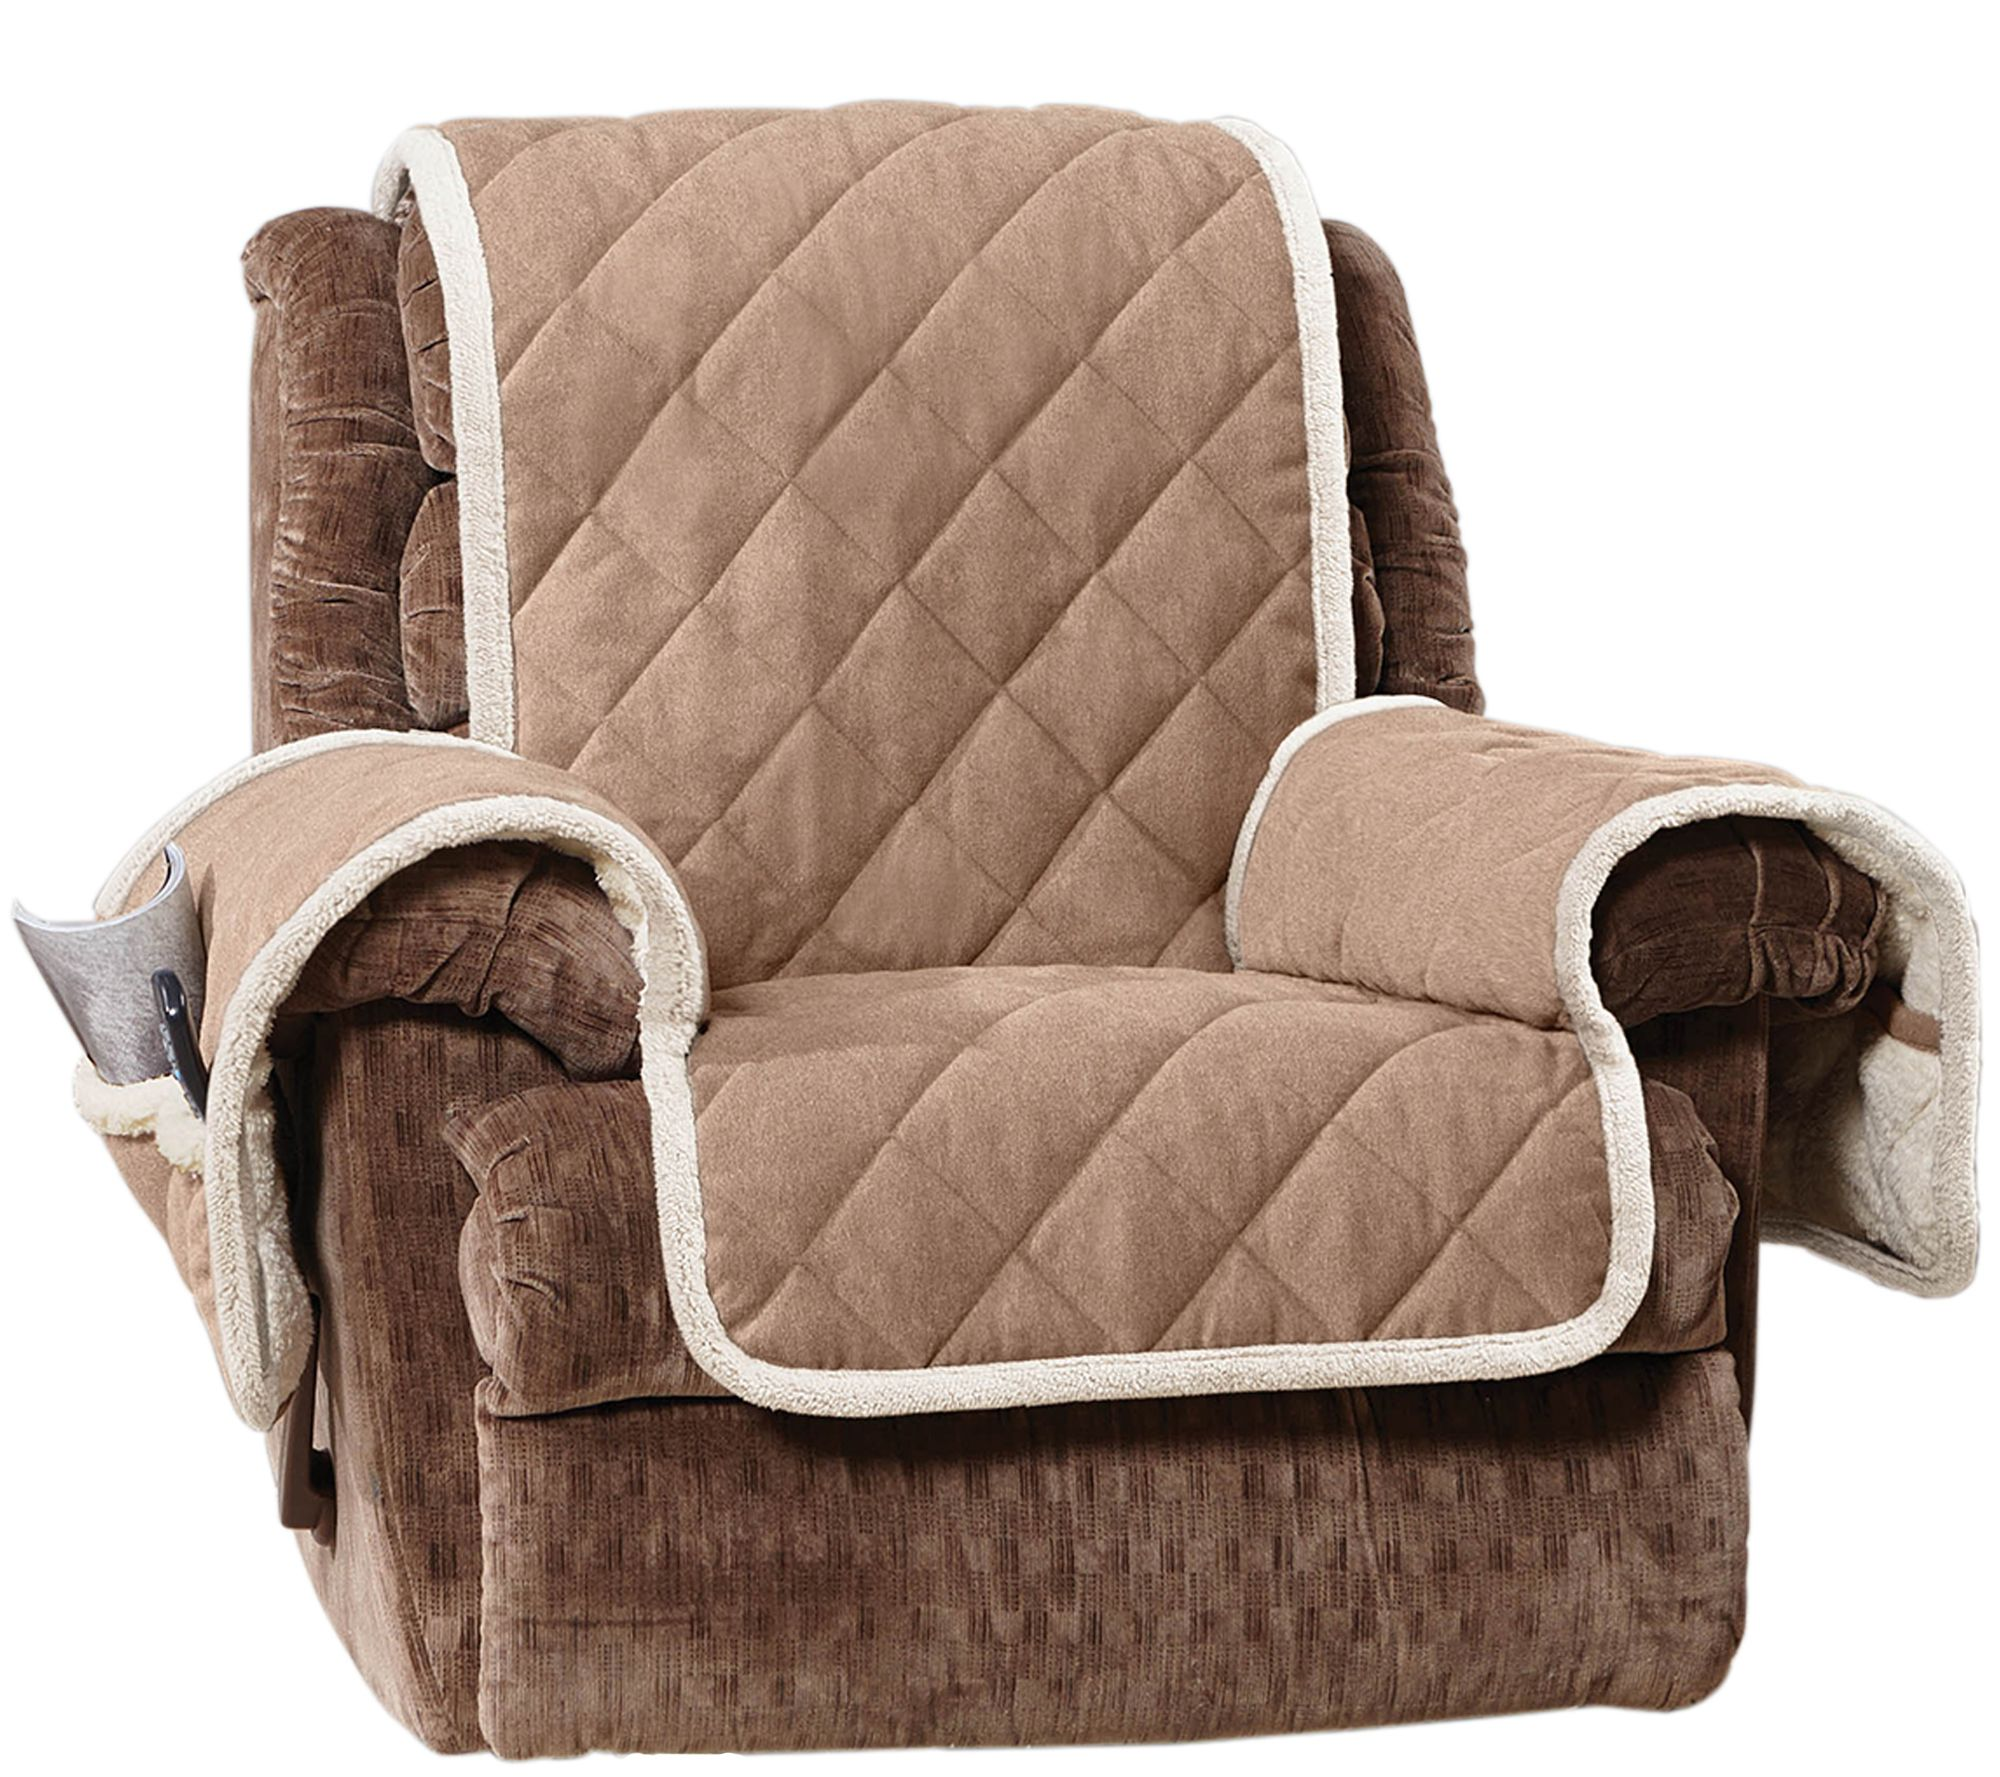 Bob Mackie Furniture Sure Fit Reversible Suede To Sherpa Recliner Furniture  .